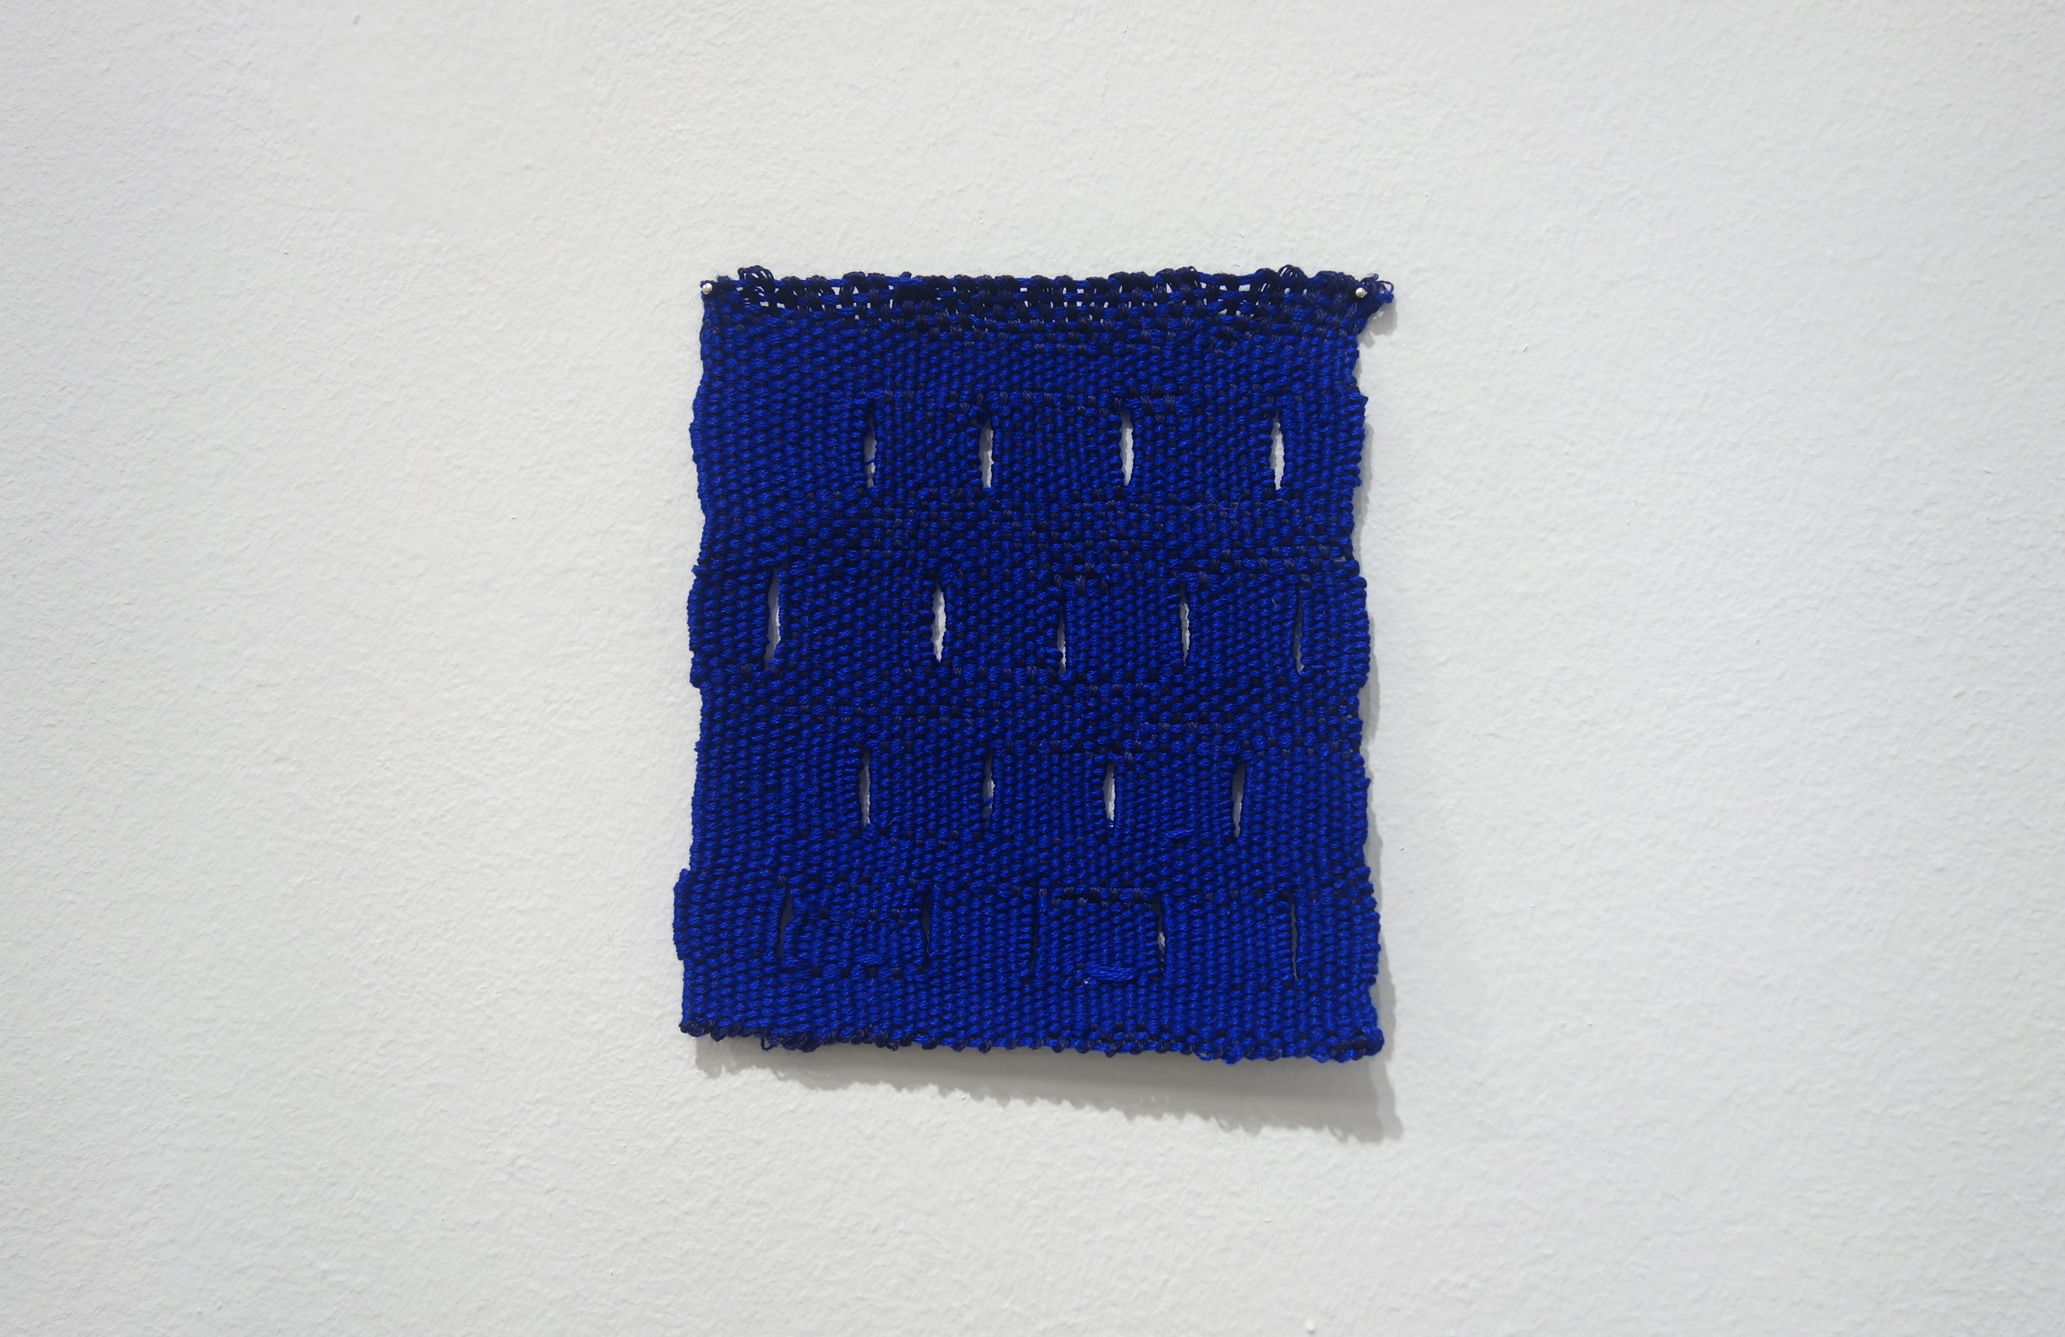 Izziyana Suhaimi, Small Studies of an Everyday Practice VIII, 2014, Cotton thread; woven, H11 x W10 cm.jpg